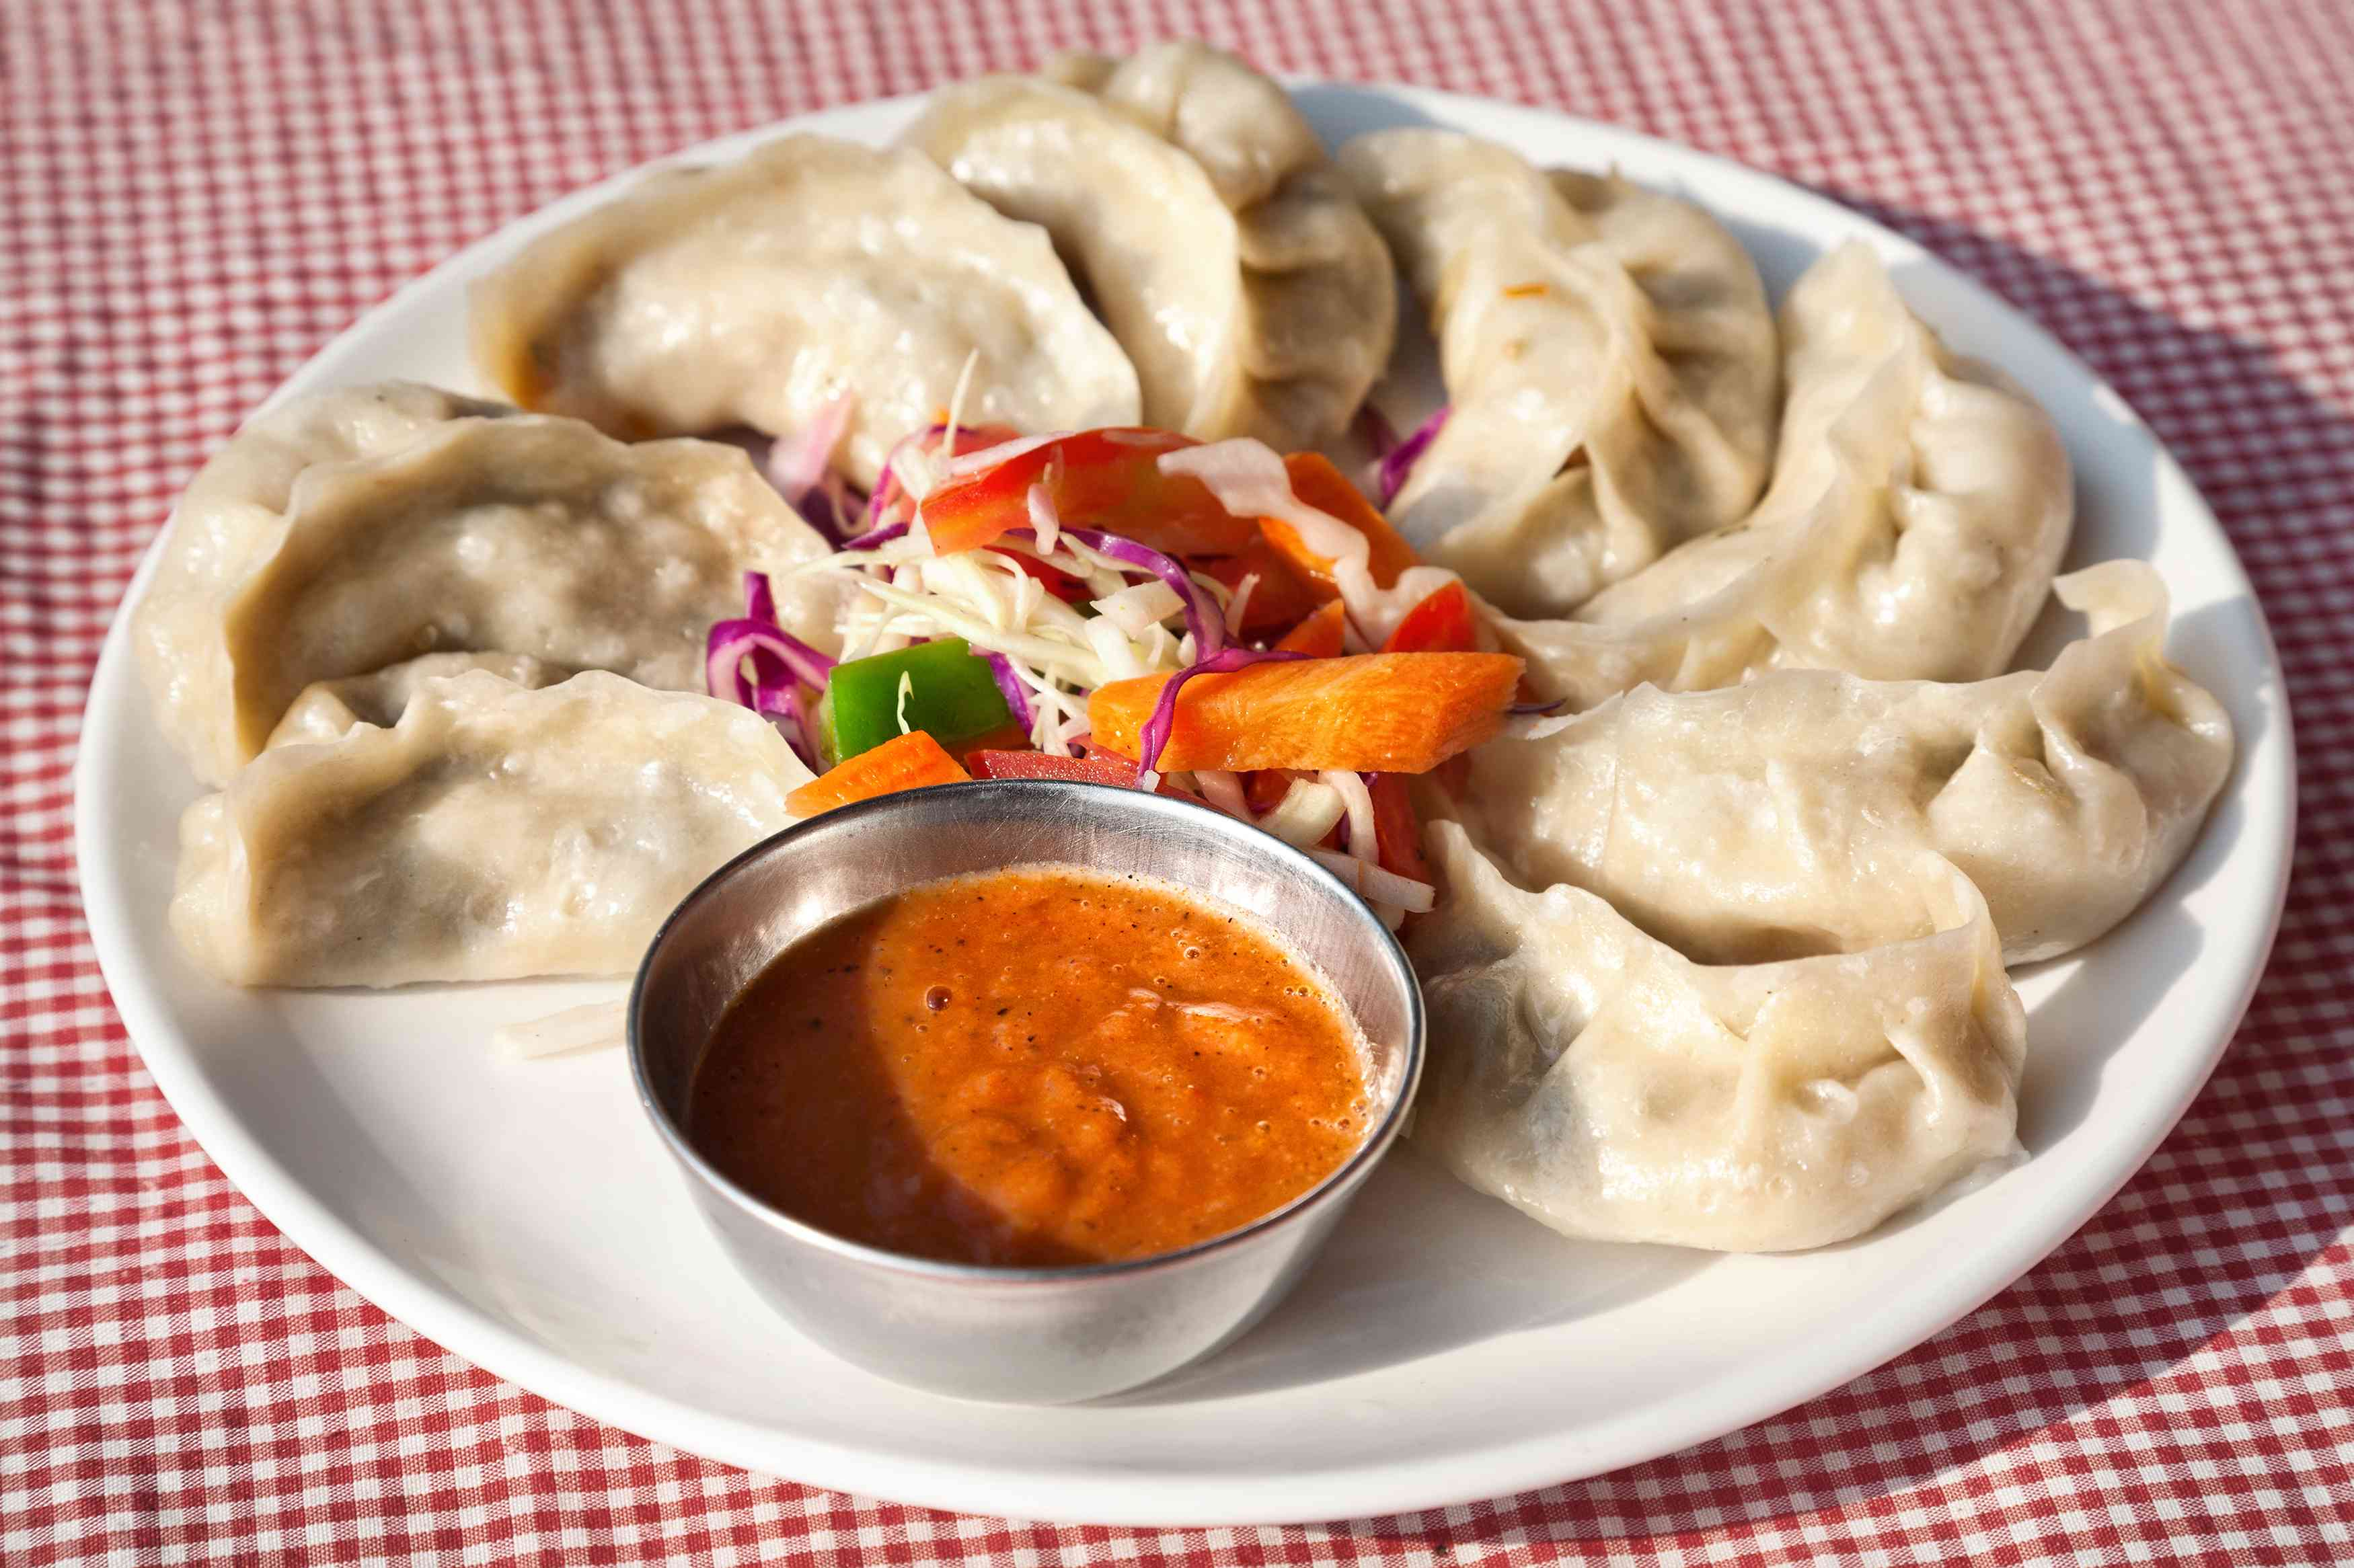 plate of crescent-shaped dumplings with a small salad and bowl of orange sauce